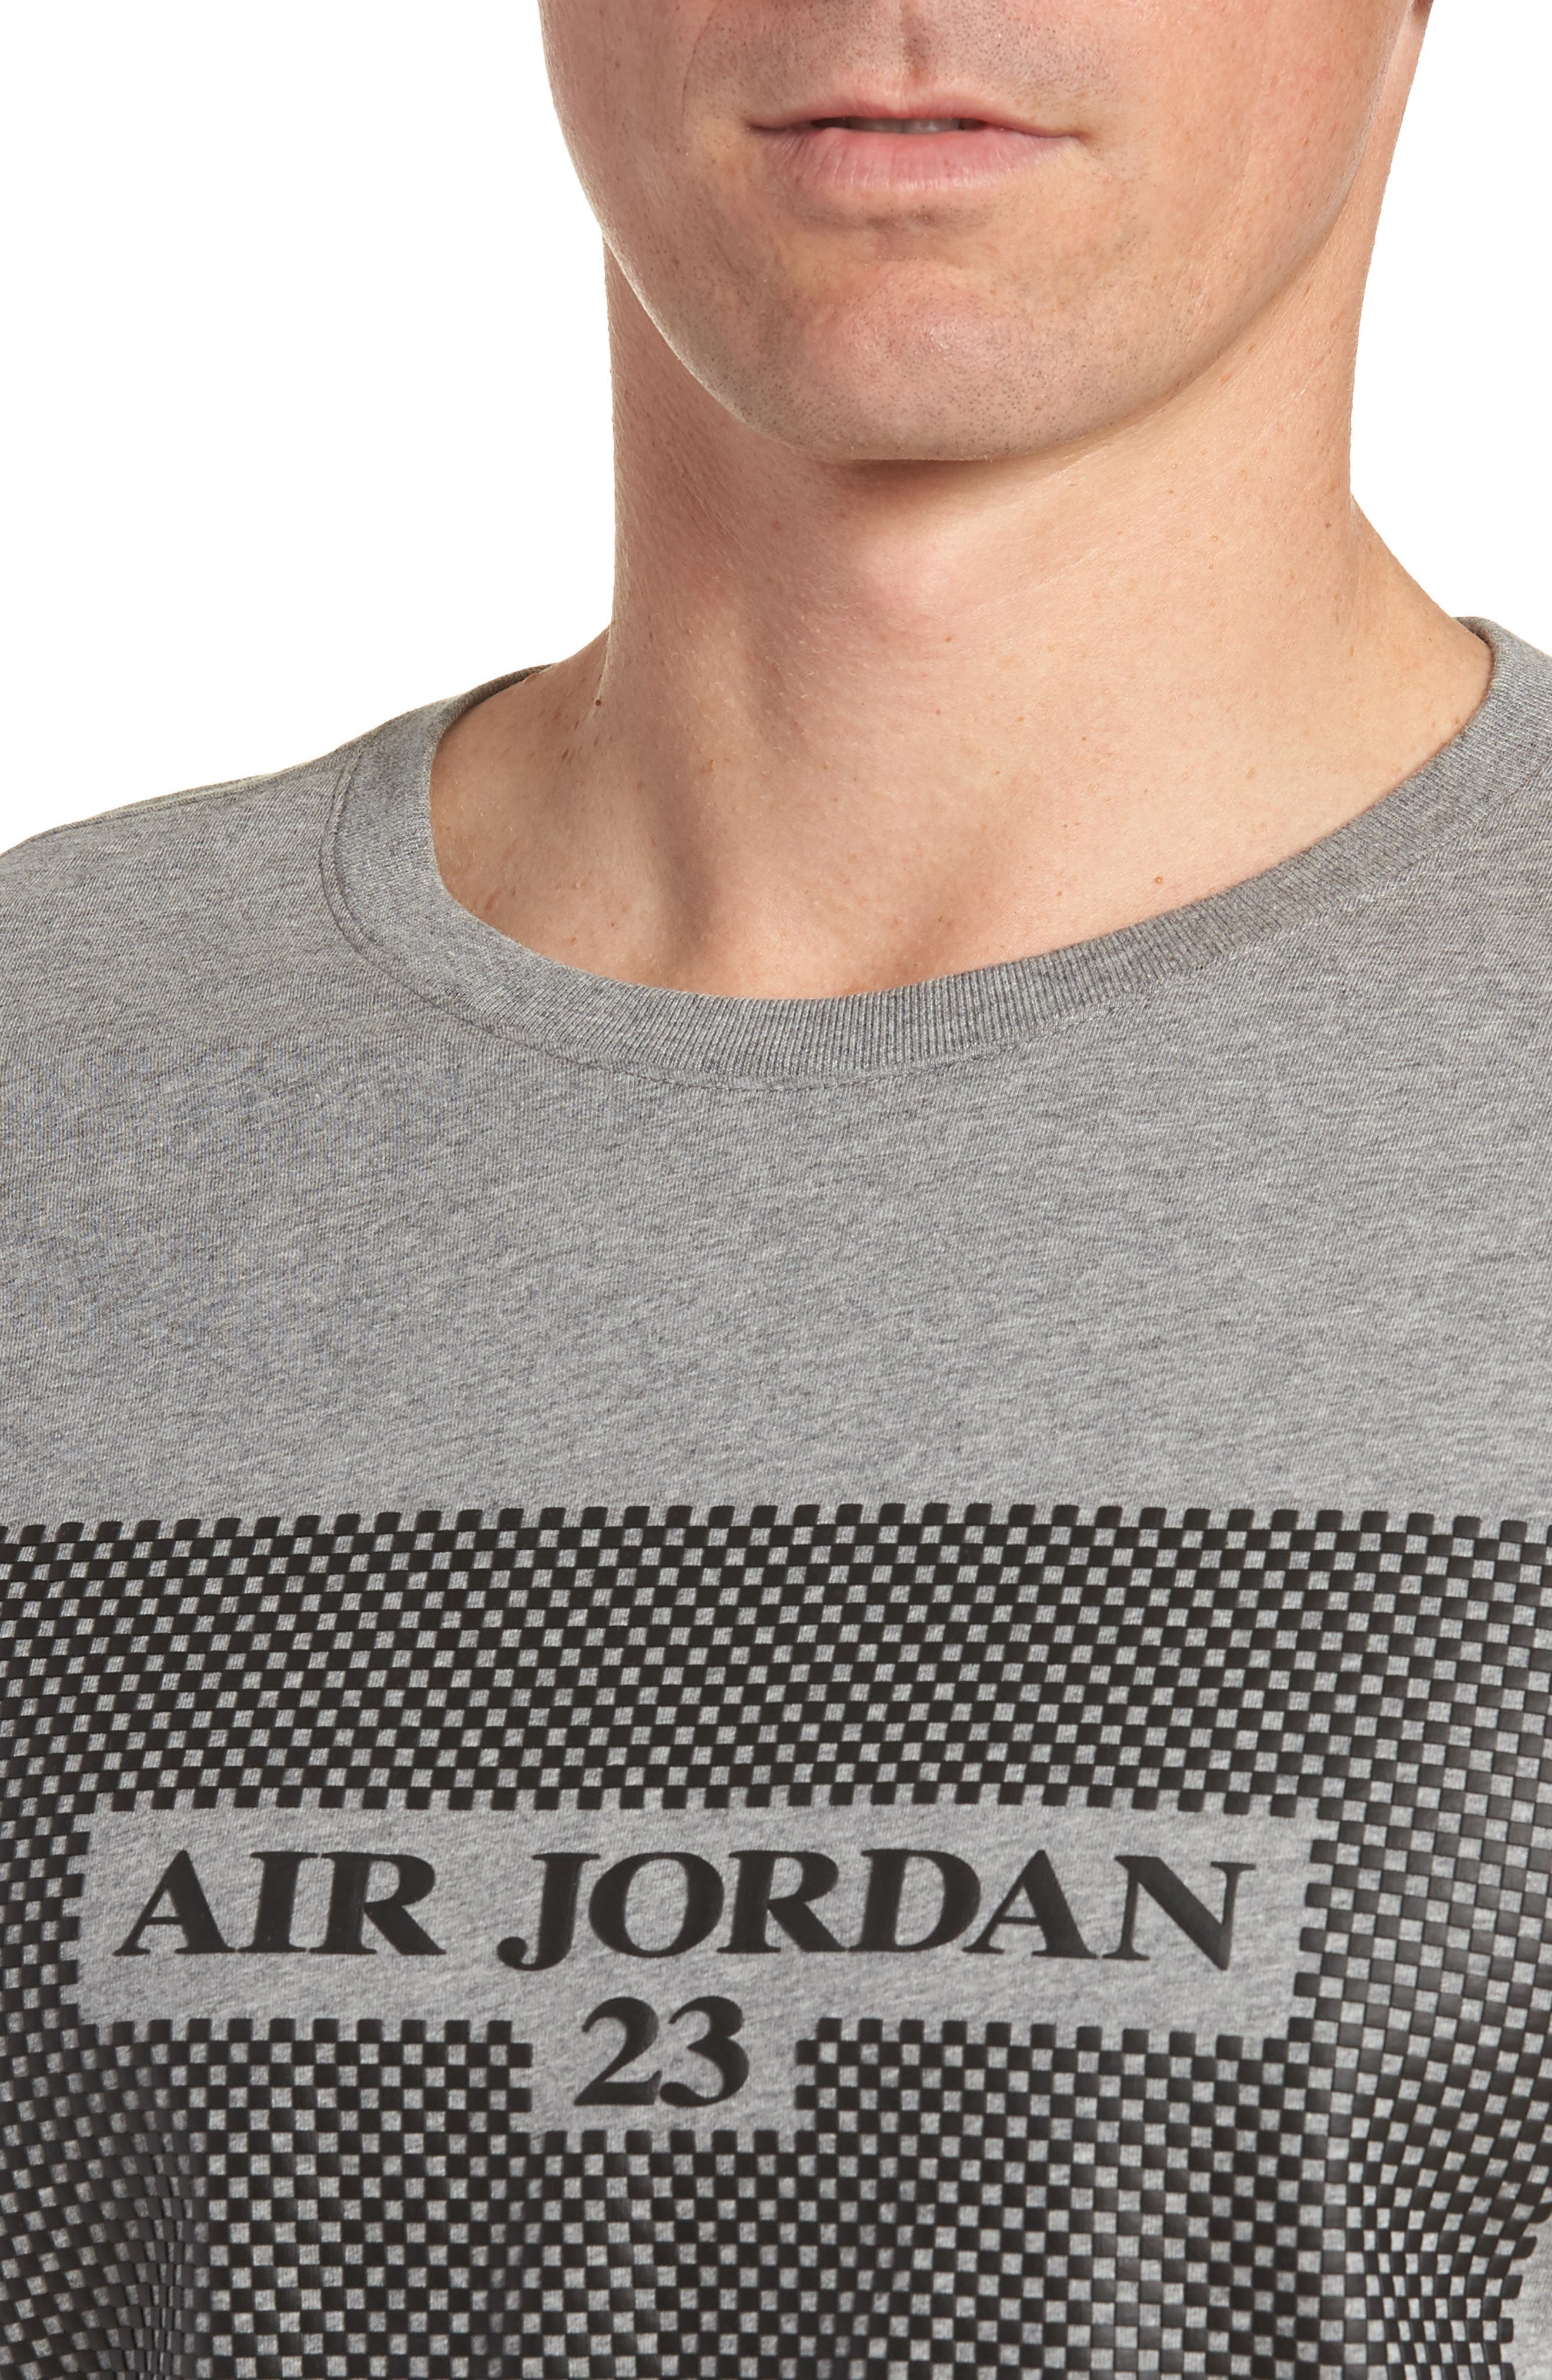 Air Jordan 23 T-Shirt,                             Alternate thumbnail 4, color,                             Carbon Heather/ Black